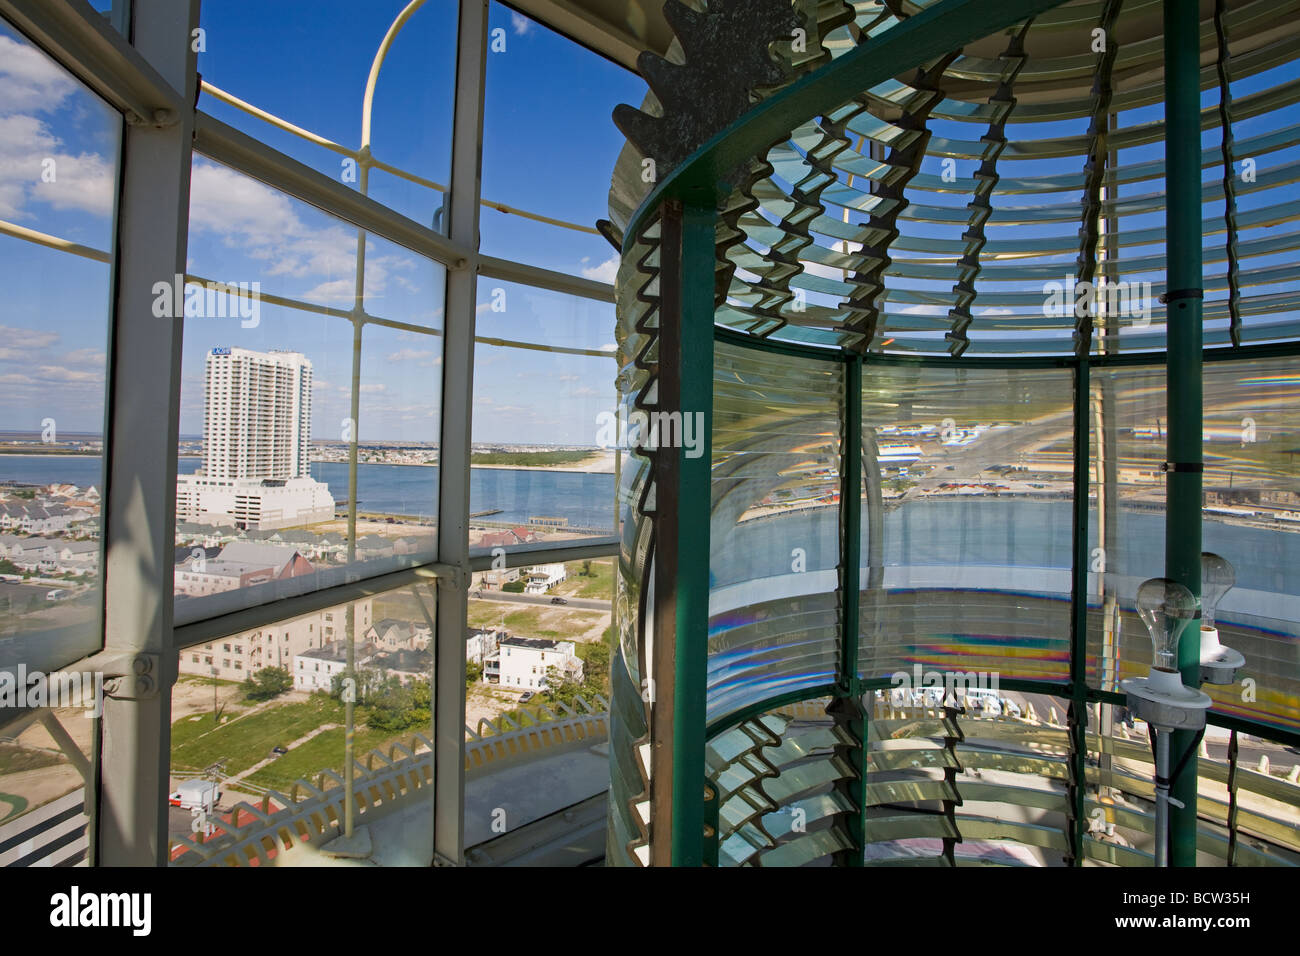 Fresnel Lens In Absecon Lighthouse Museum Atlantic County City New Jersey USA